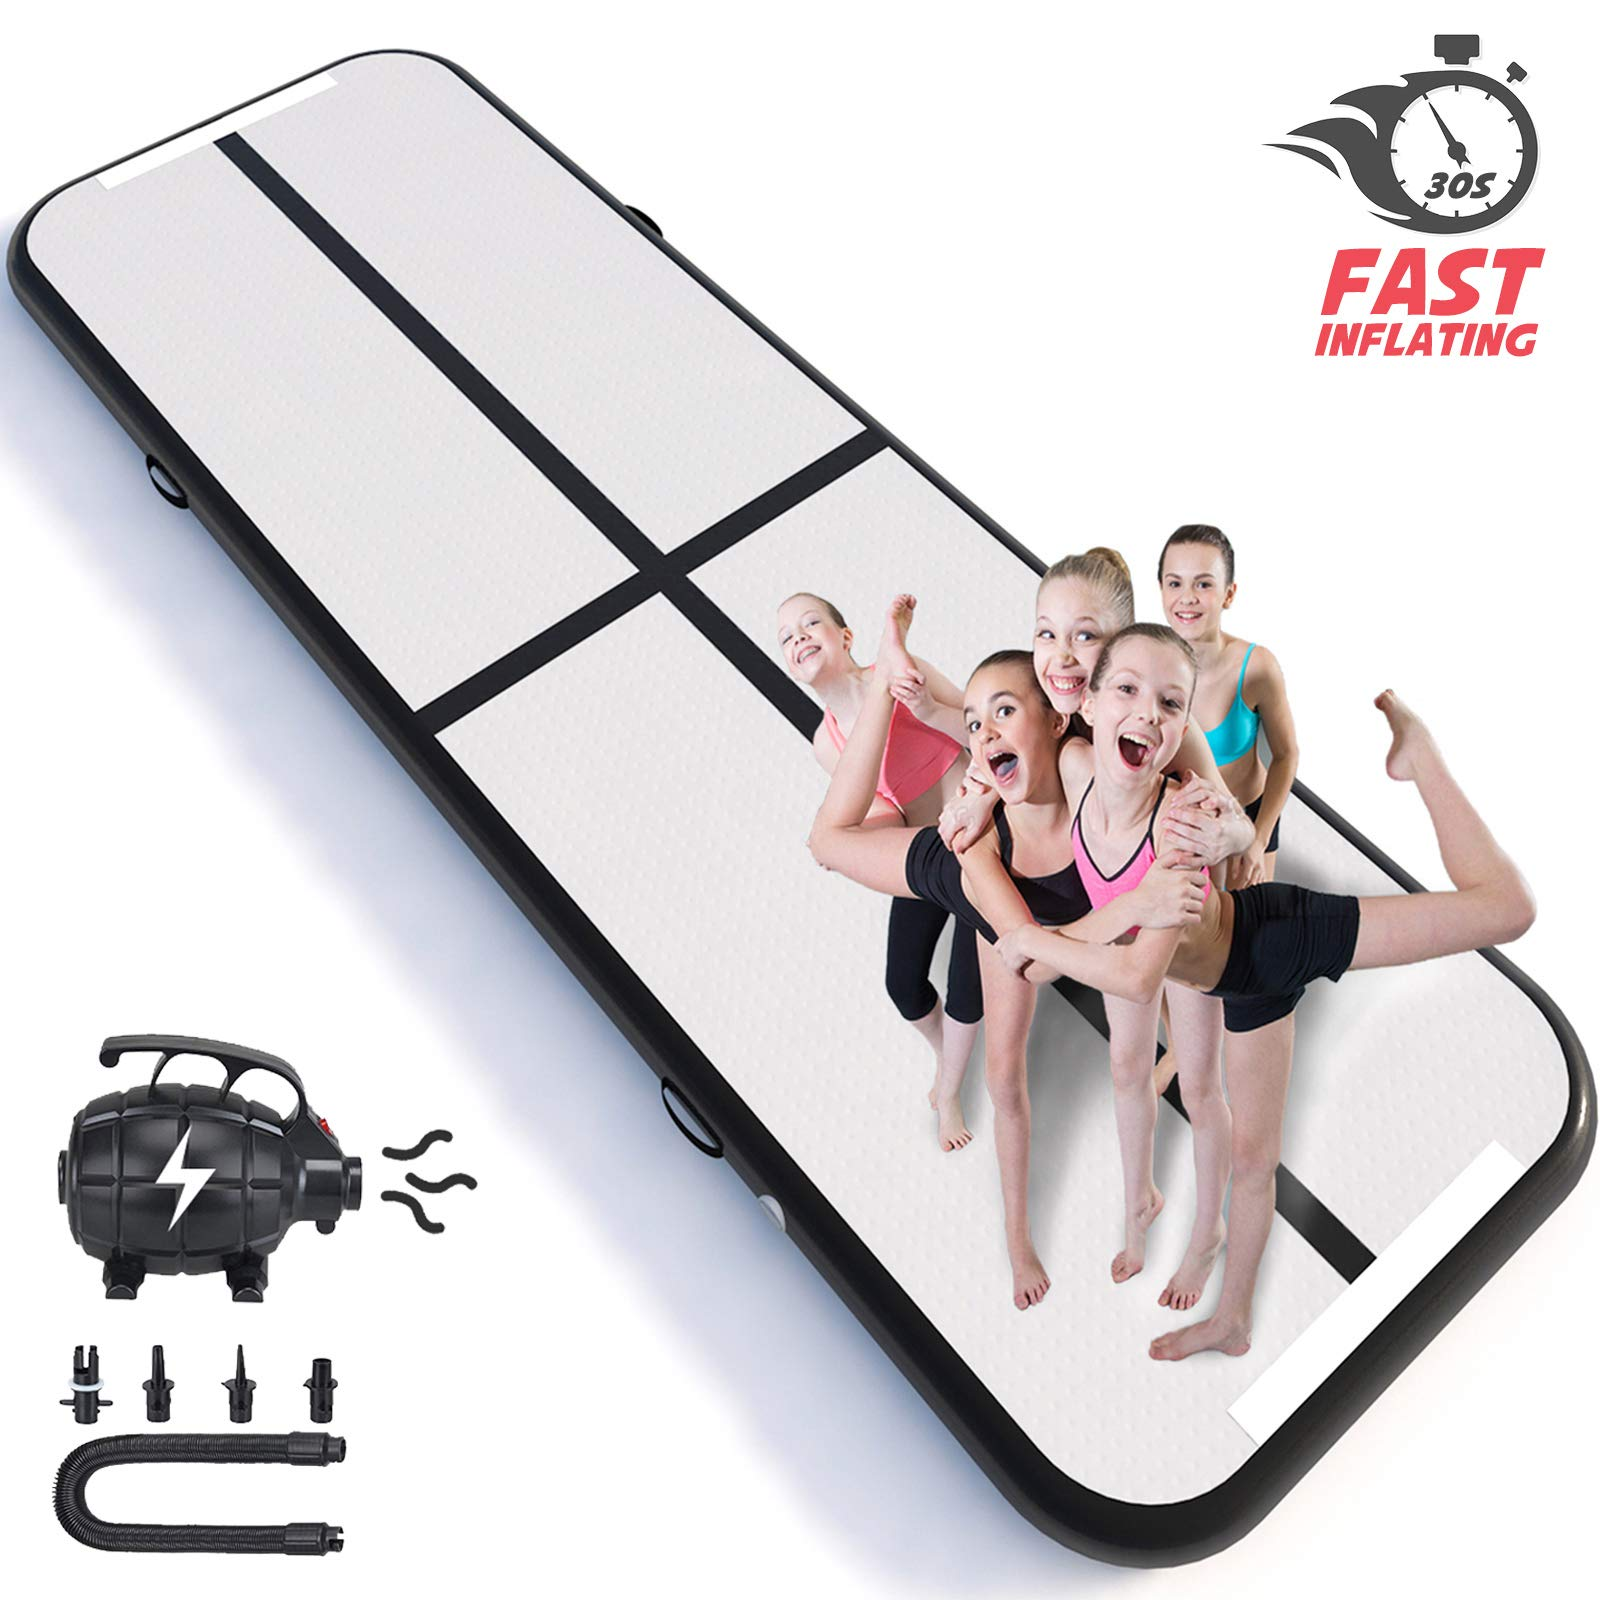 Happybuy 10ft/13ft/17ft/20ft/23ft/26ft/33ft Air Track 8in Thick Tumbling Mat Inflatable Gymnastics Airtrack for Home Use/Cheerleading/Yoga/Parkour/Water with Pump (Black(40x4in), 10ft)